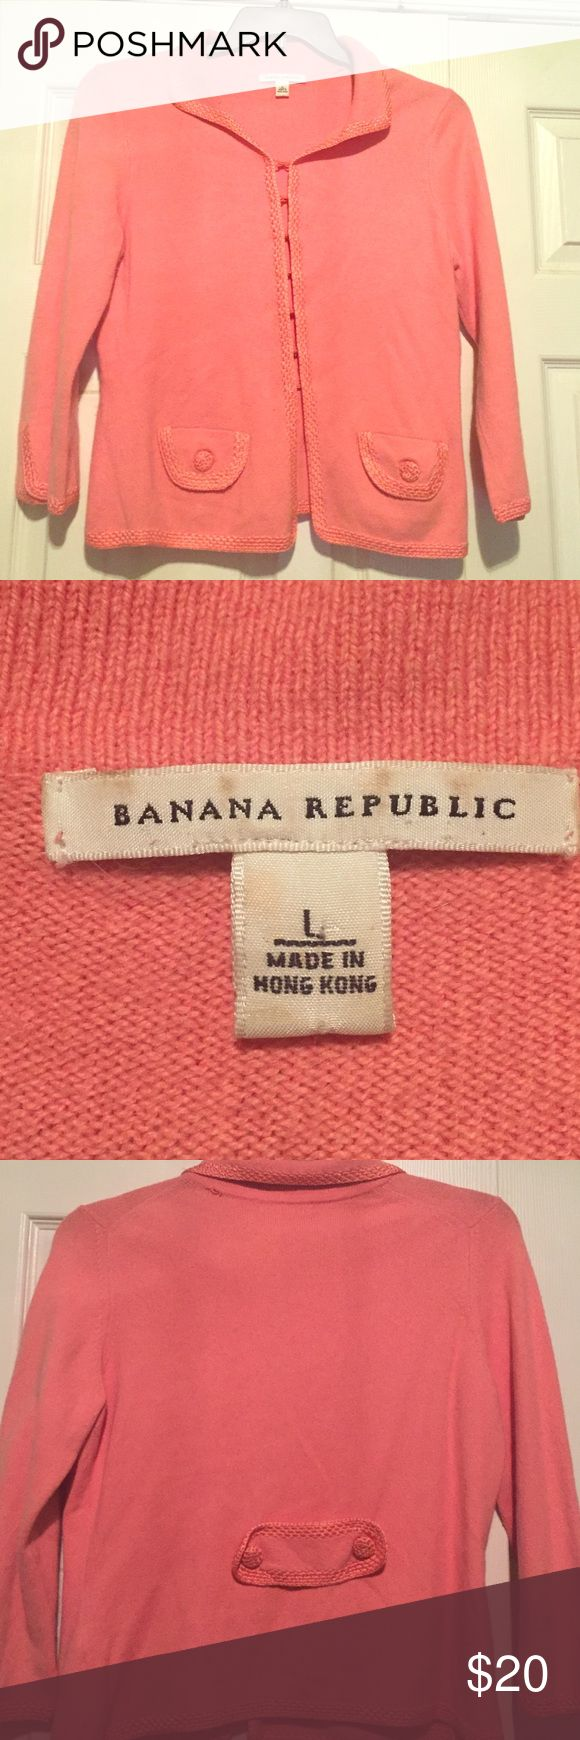 Banana Republic Coral cardigan Banana Republic coral cardigan with hook and eye closures.  Small separation in the back of collar that can be easily repaired. Banana Republic Sweaters Cardigans